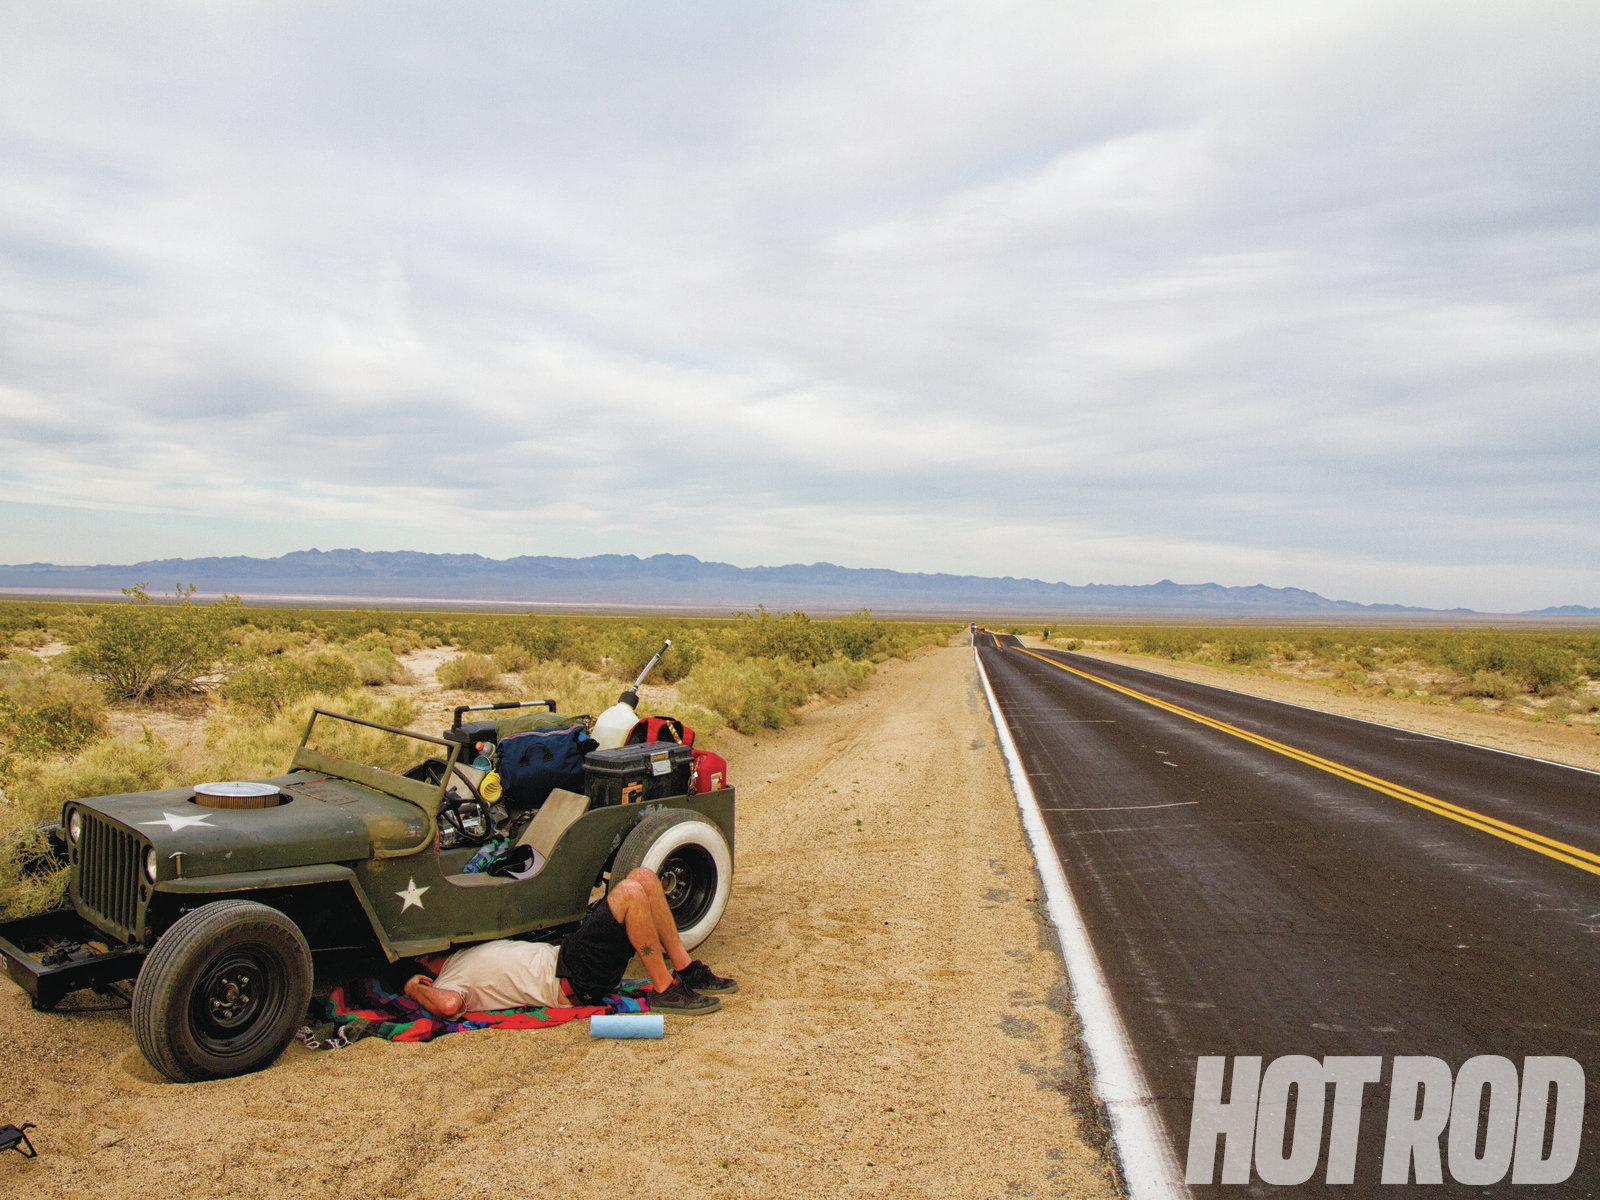 The shifter stopped shifting an hour into the trip after the nut and bolt connecting the linkage fell out, but we didn't fix it until the next day, when we stuffed the Willys into a berm on the side of the road while trying in vain to make a U-turn.